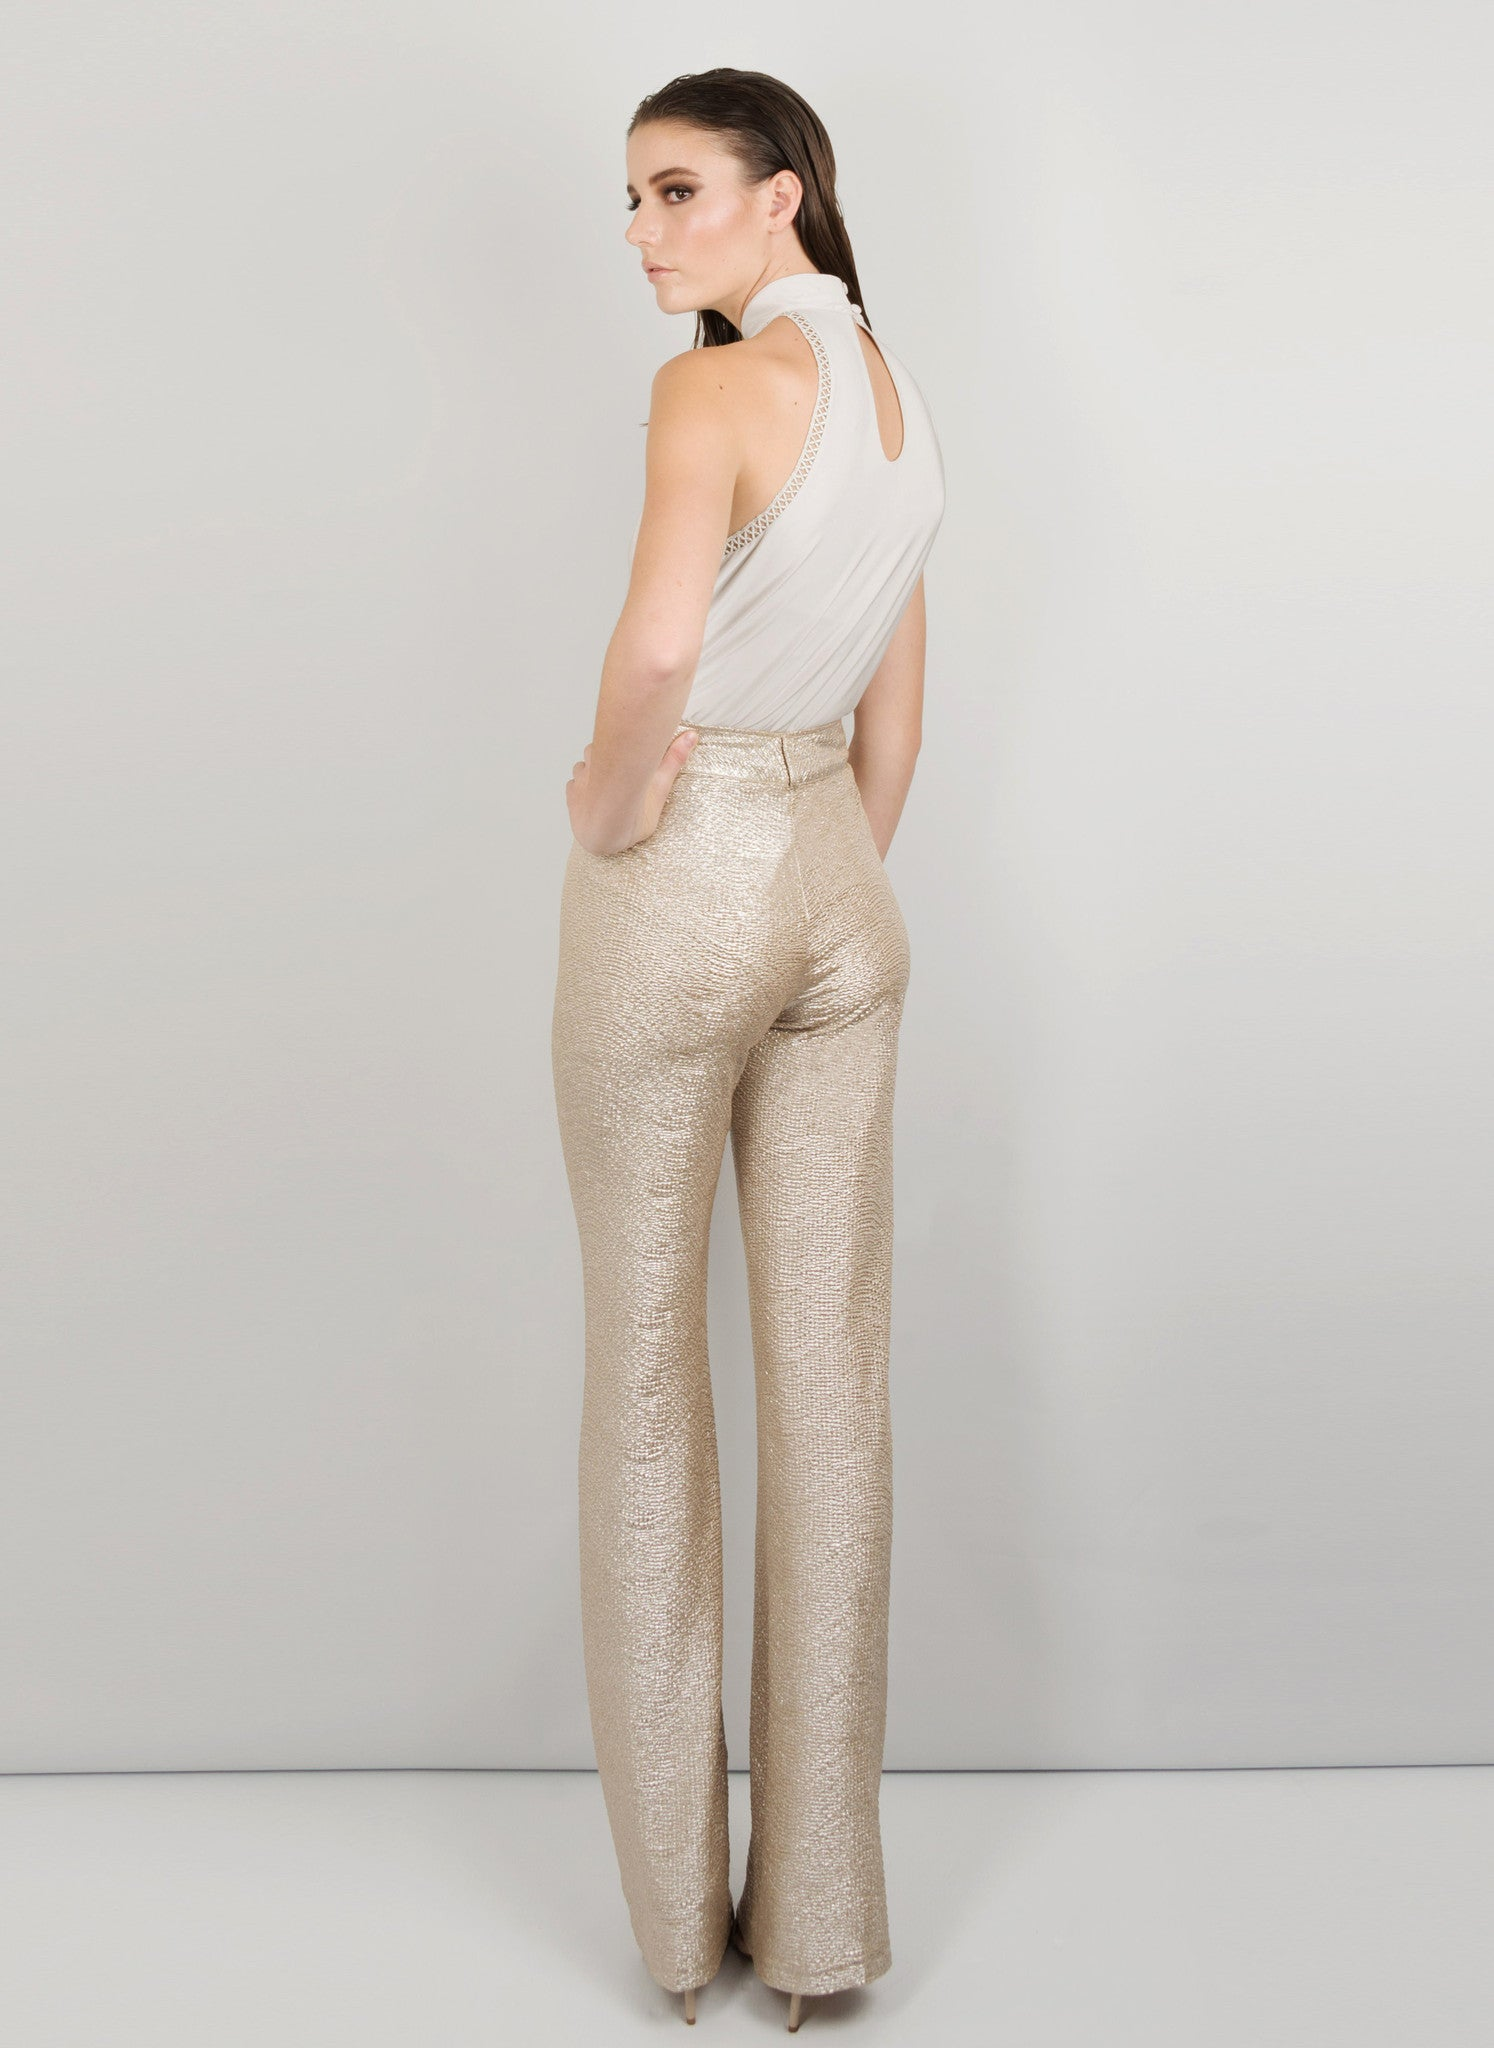 MADOLA-THE-LABEL - STELLA PANT. High waist, luxurious textured metallic fabric, flared leg, lightweight, fitted hip. Designed in Australia.